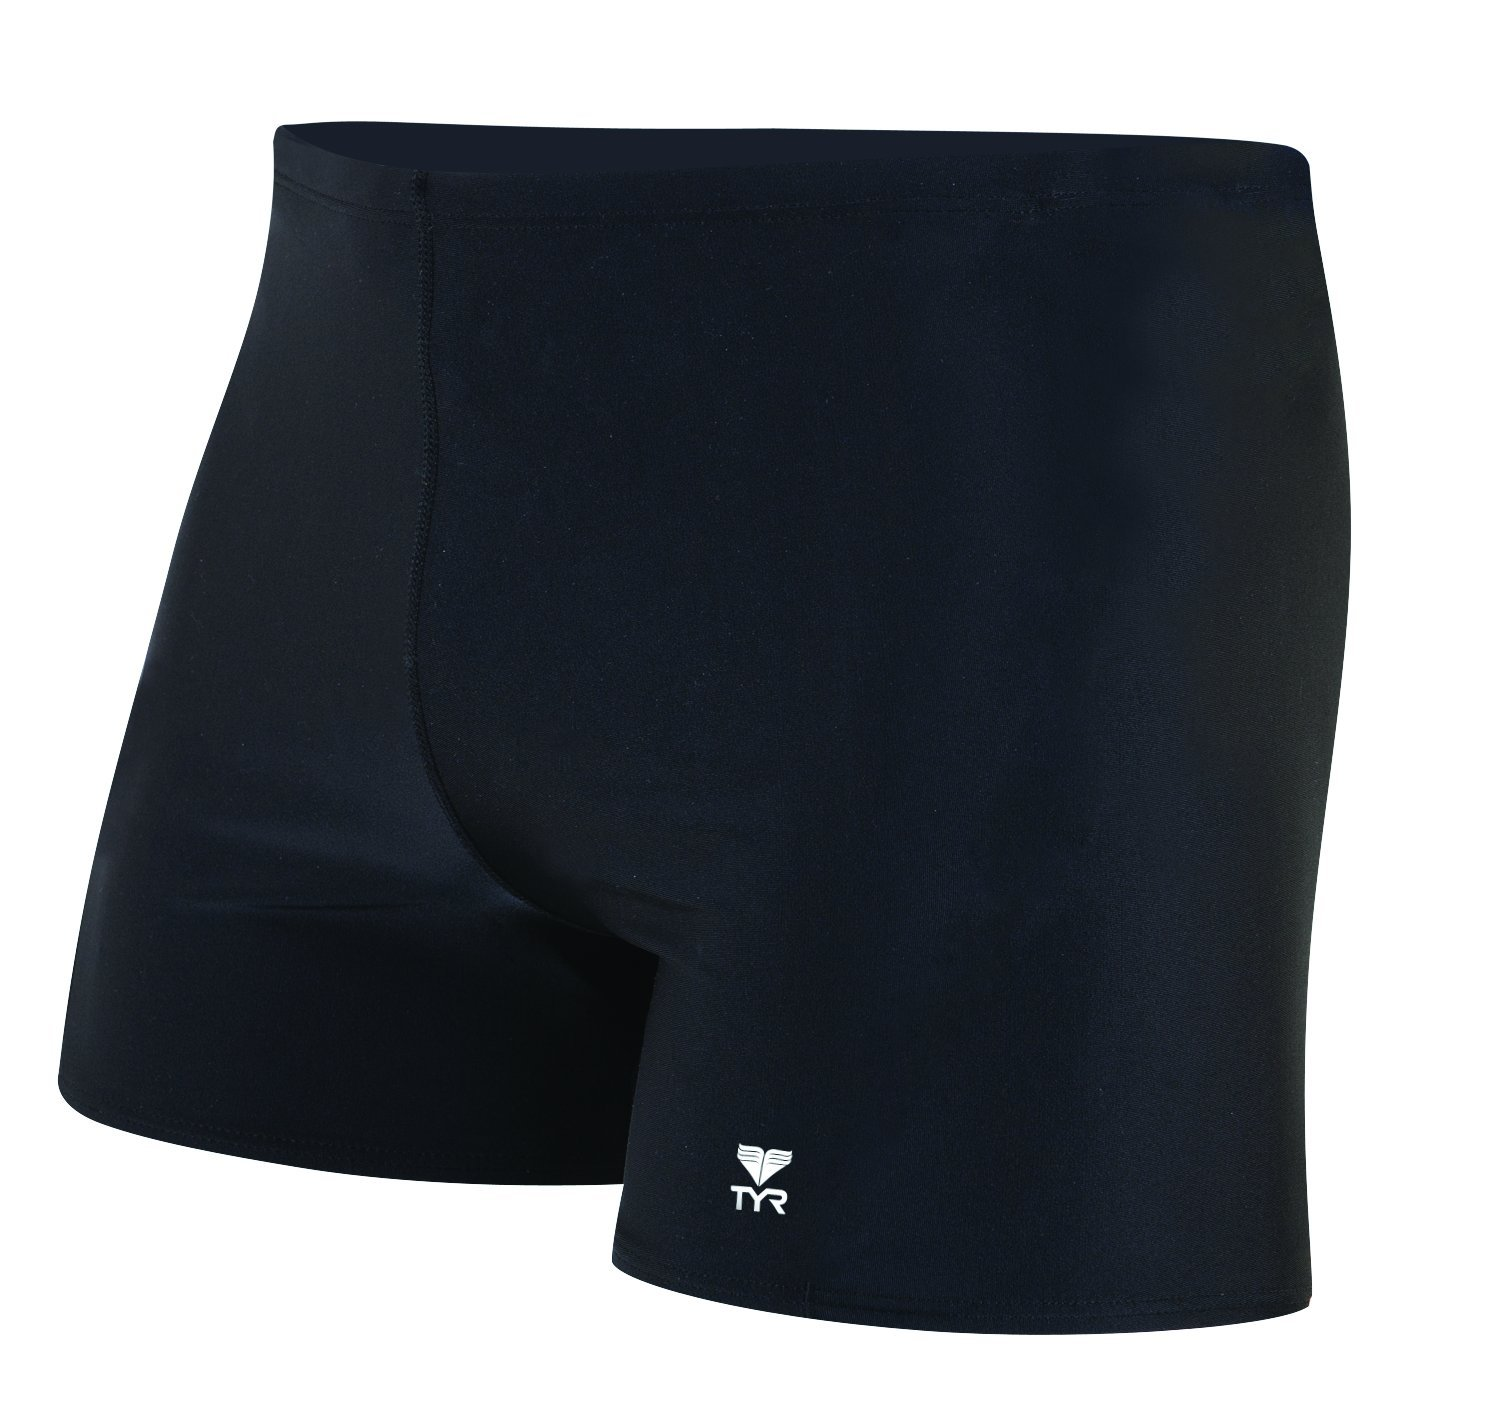 TYR Men's Male Solid Square Leg, Black, 34 by TYR